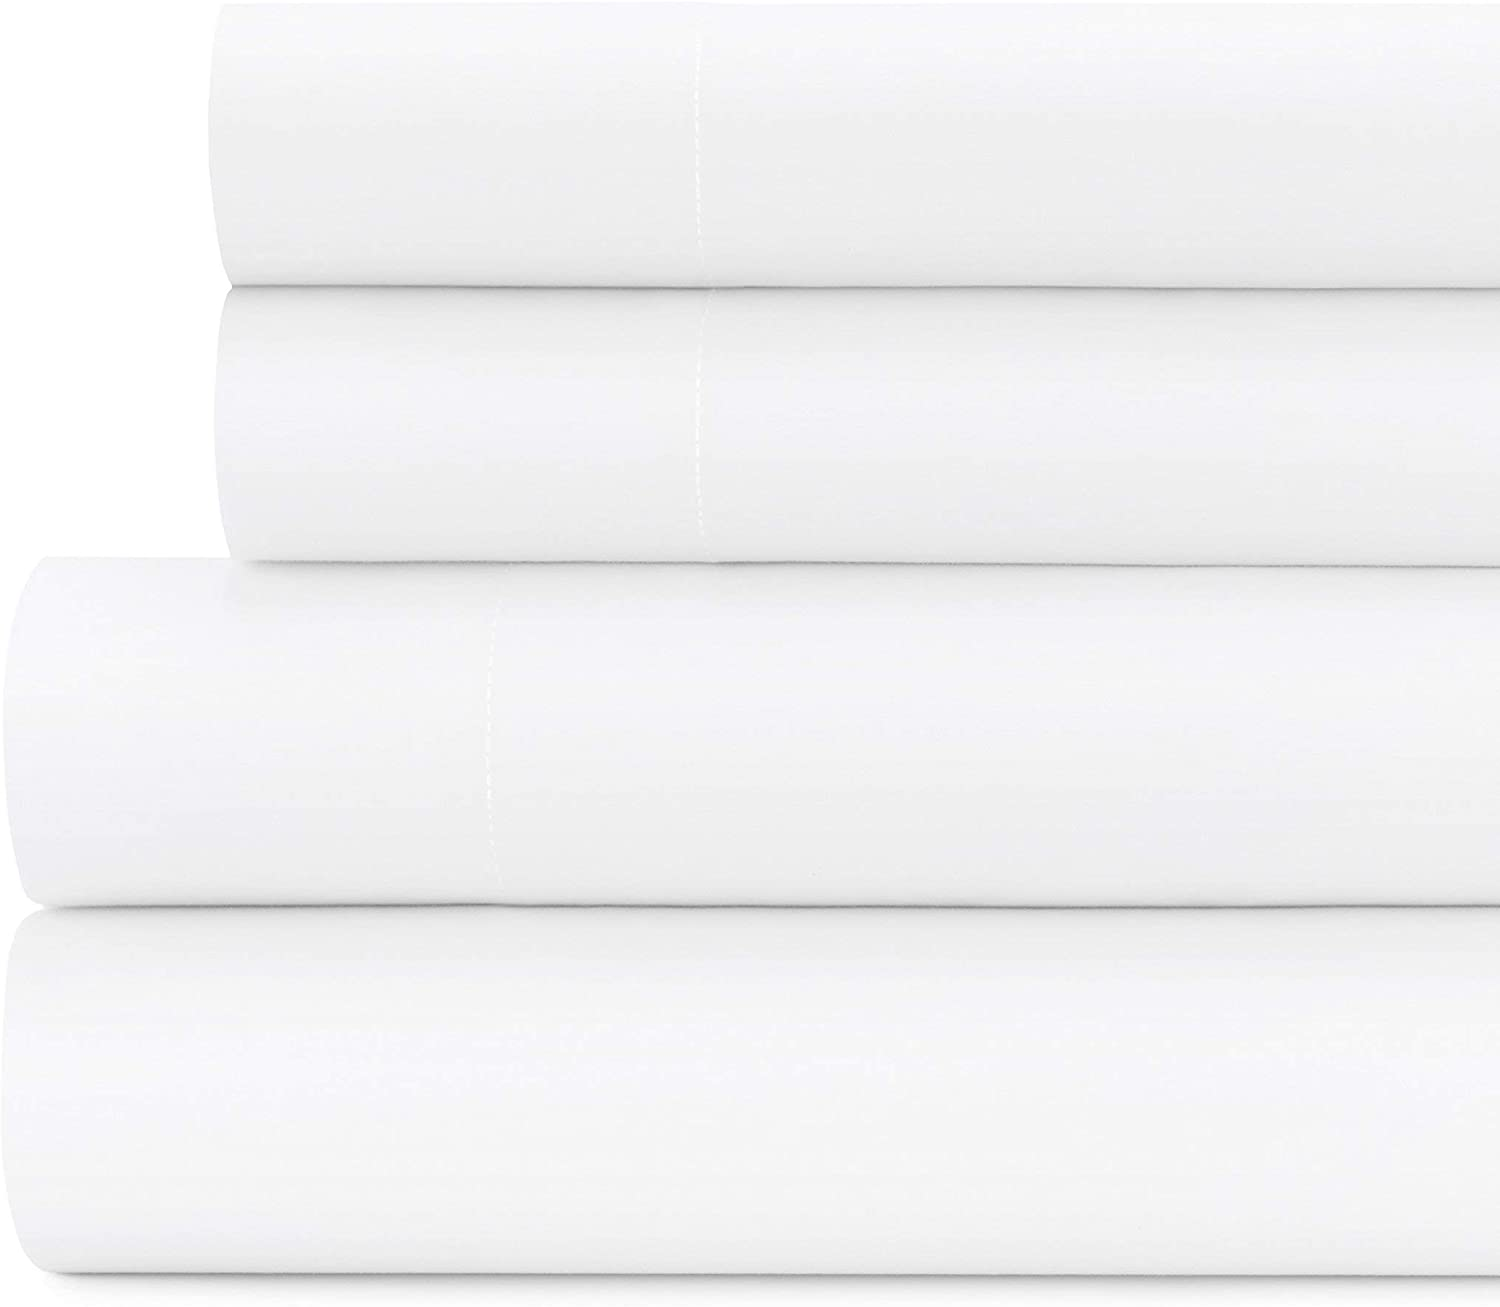 Briarwood Home 150 GSM Solid Percale Deep Pocket Bed Sheet Set, 100% Percale Cotton, Ultra Smooth & Soft Bed Sheets (Queen, White)